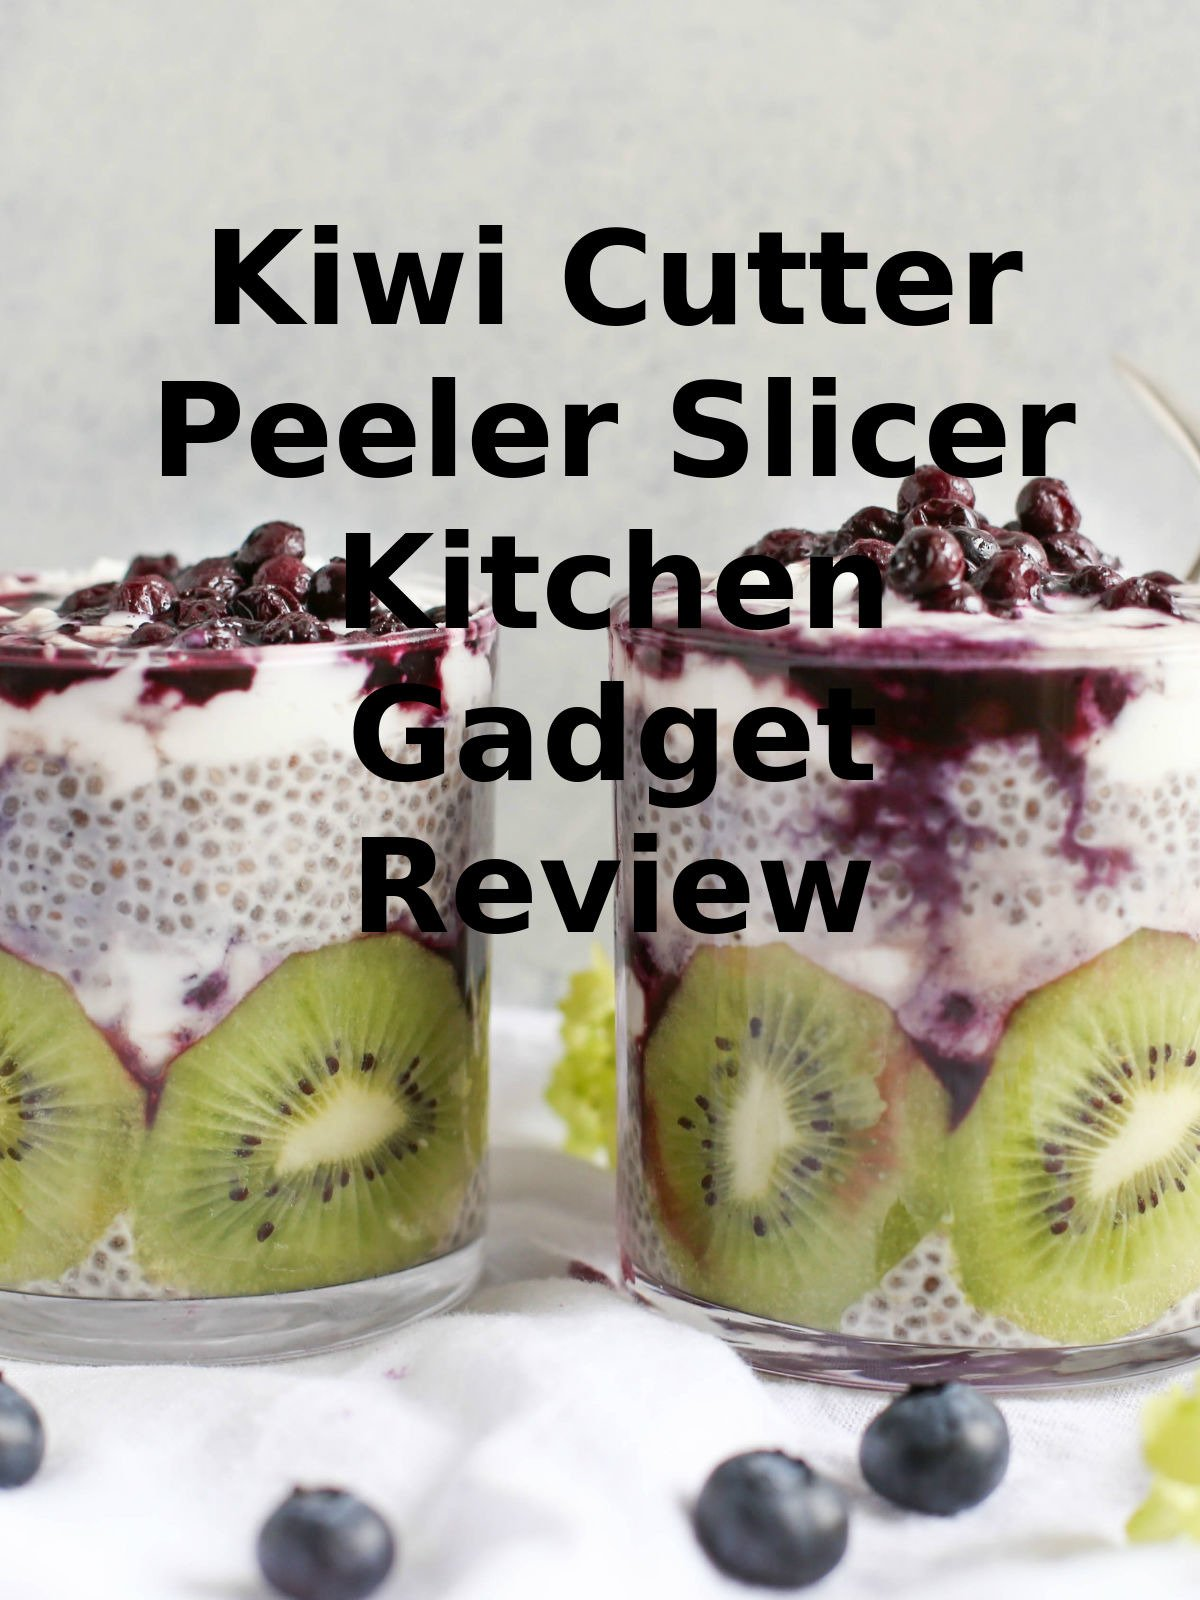 Review: Kiwi Cutter Peeler Slicer Kitchen Gadget Review on Amazon Prime Video UK